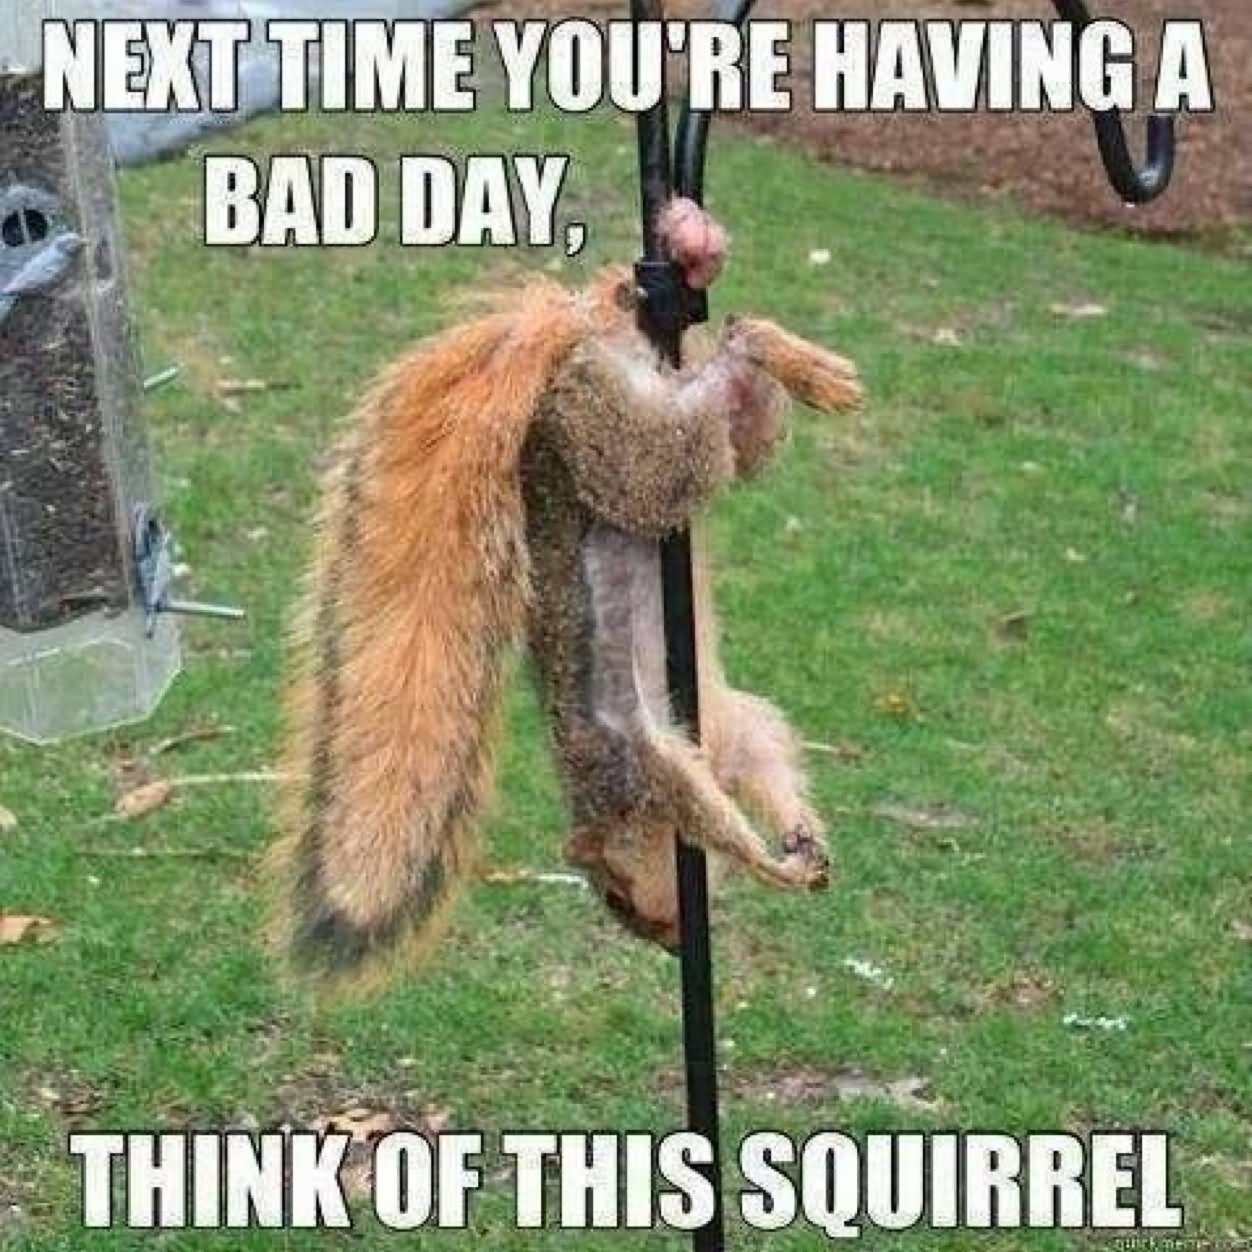 Next time youre having a bad day Squirrel Meme?resize=640%2C640 41 most funniest squirrel memes images, pictures & gifs picsmine,Funny Squirrel Memes